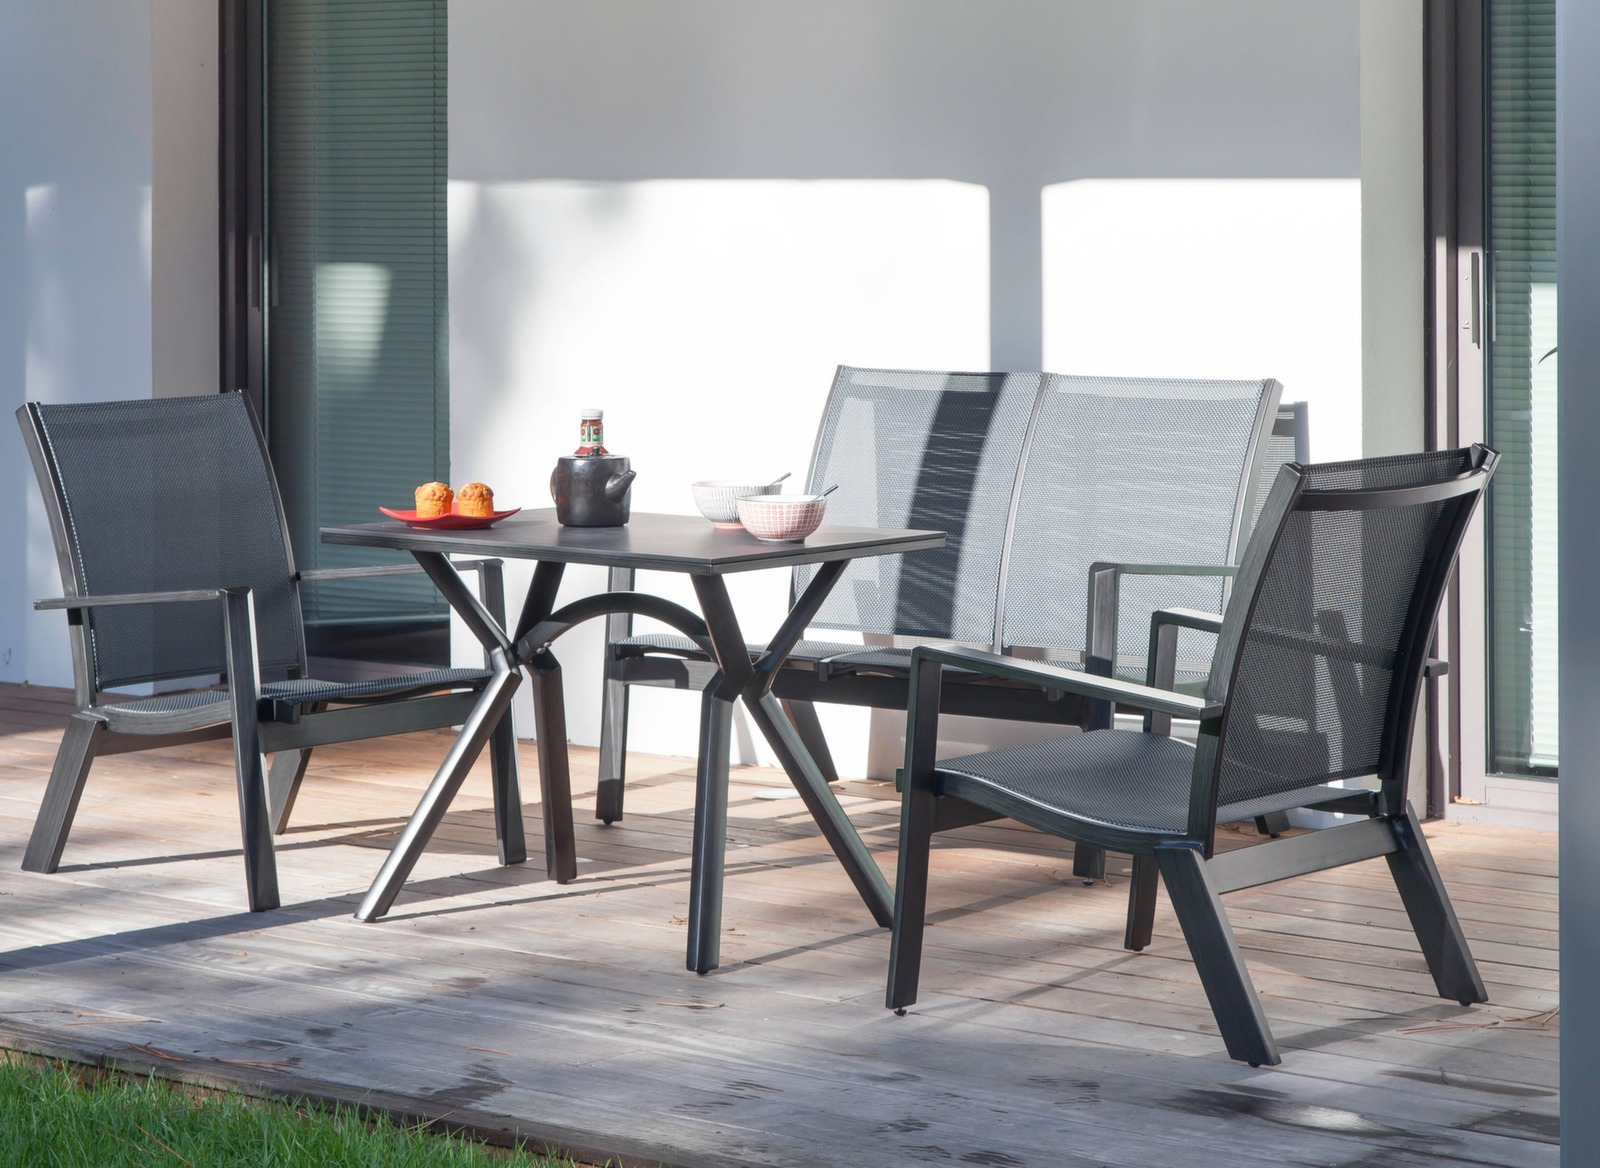 ensemble repas d tente loane mobilier de jardin pour le repas. Black Bedroom Furniture Sets. Home Design Ideas